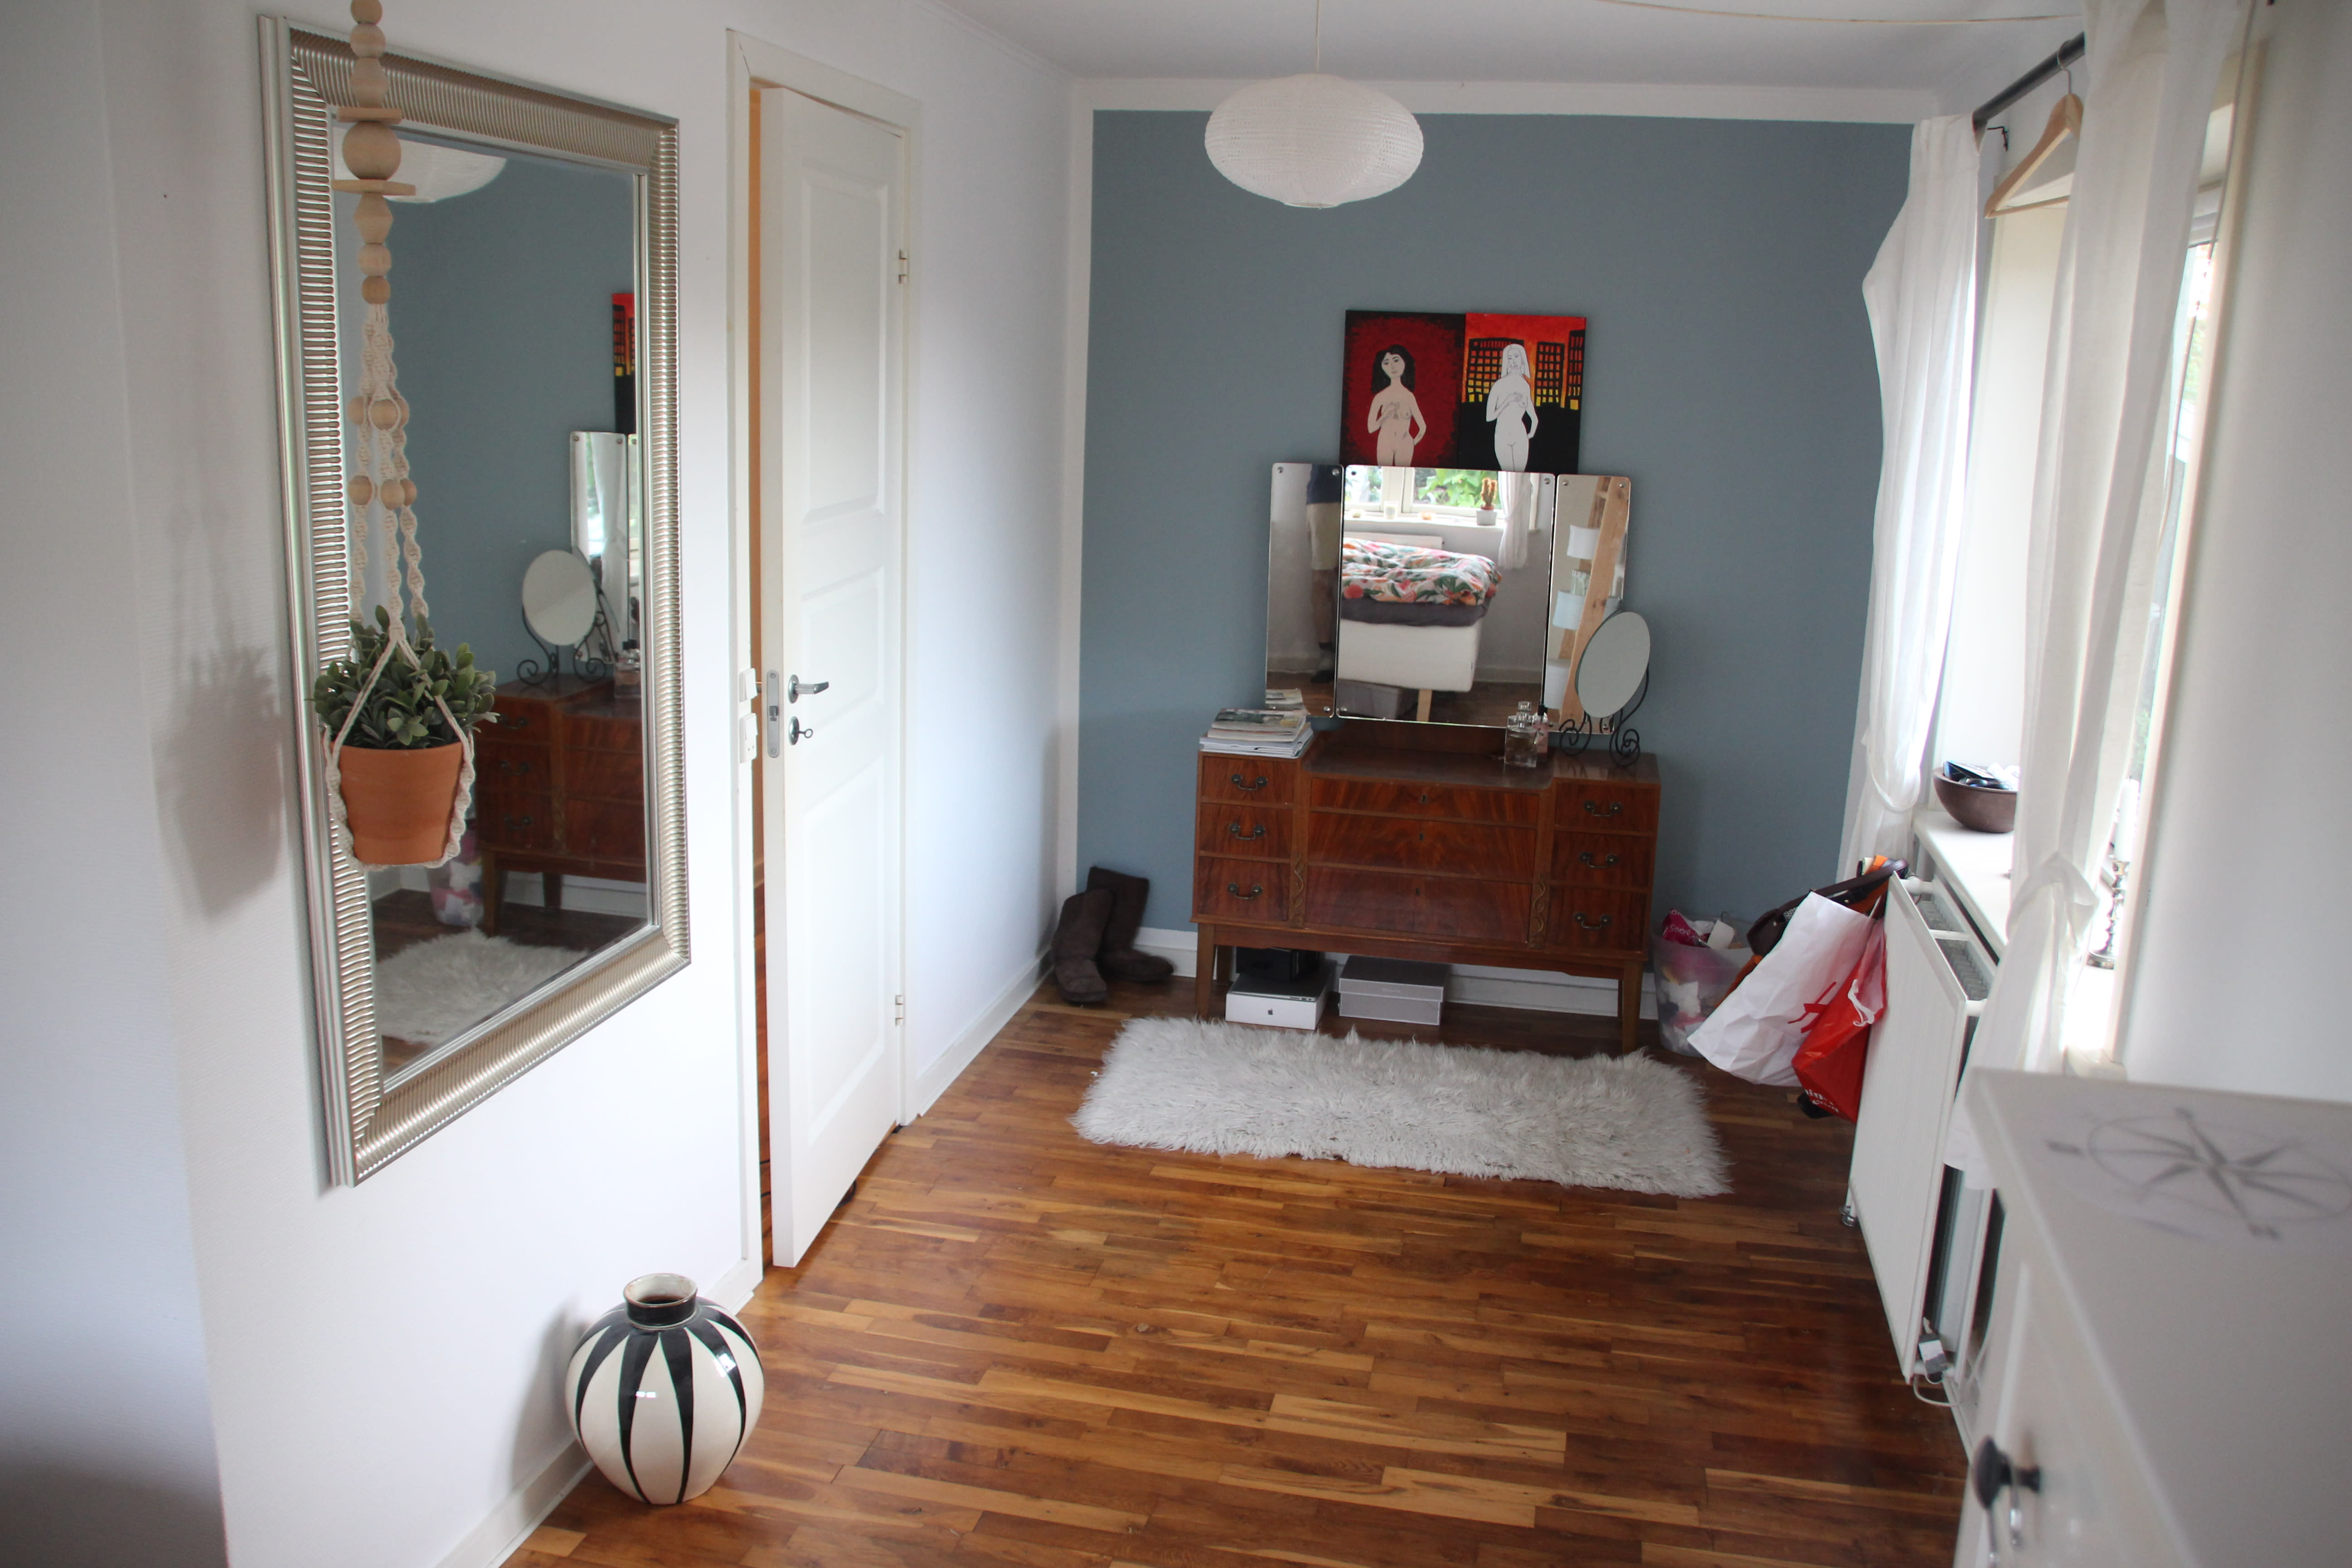 Two rooms for rent in Roskilde